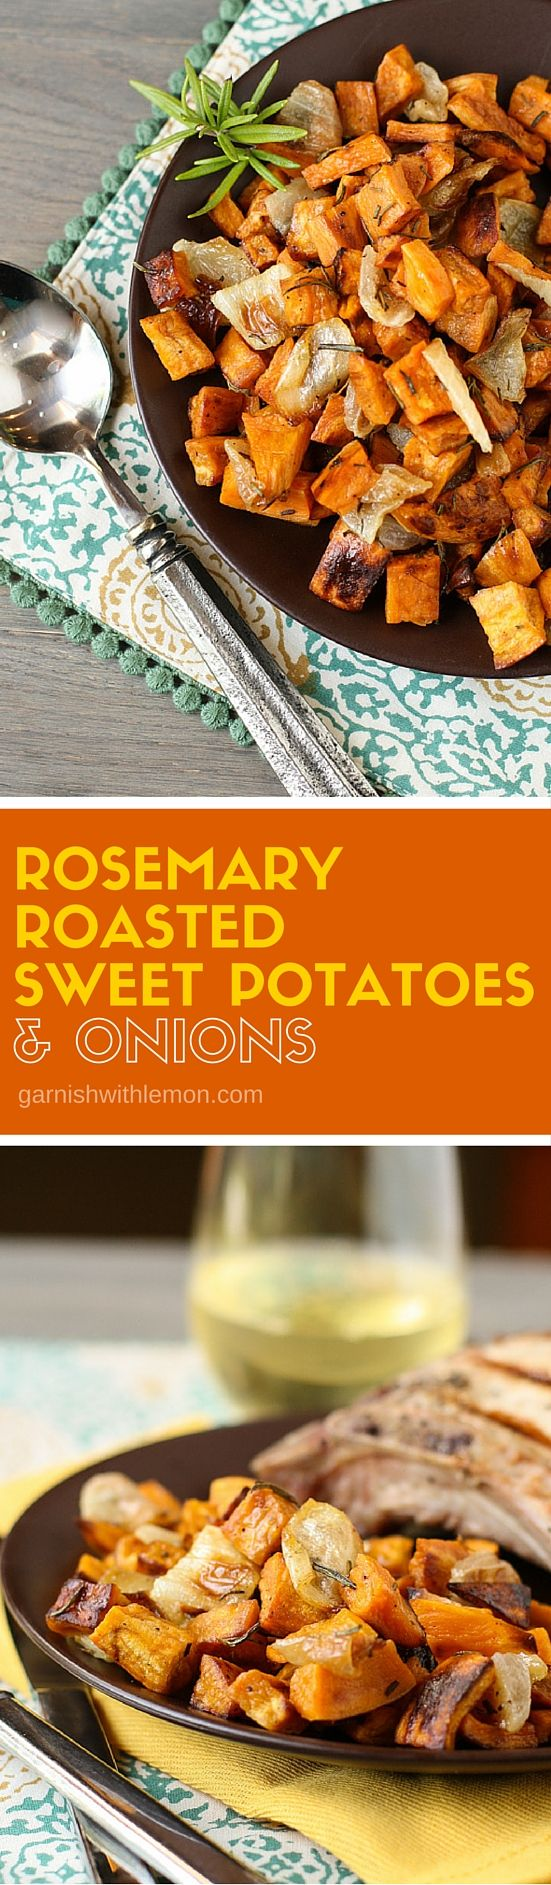 These paleo friendly Rosemary Roasted Sweet Potatoes & Onions are a huge family favorite. They make an easy side dish as well as an tasty hash the next day! ~ http://www.garnishwithlemon.com